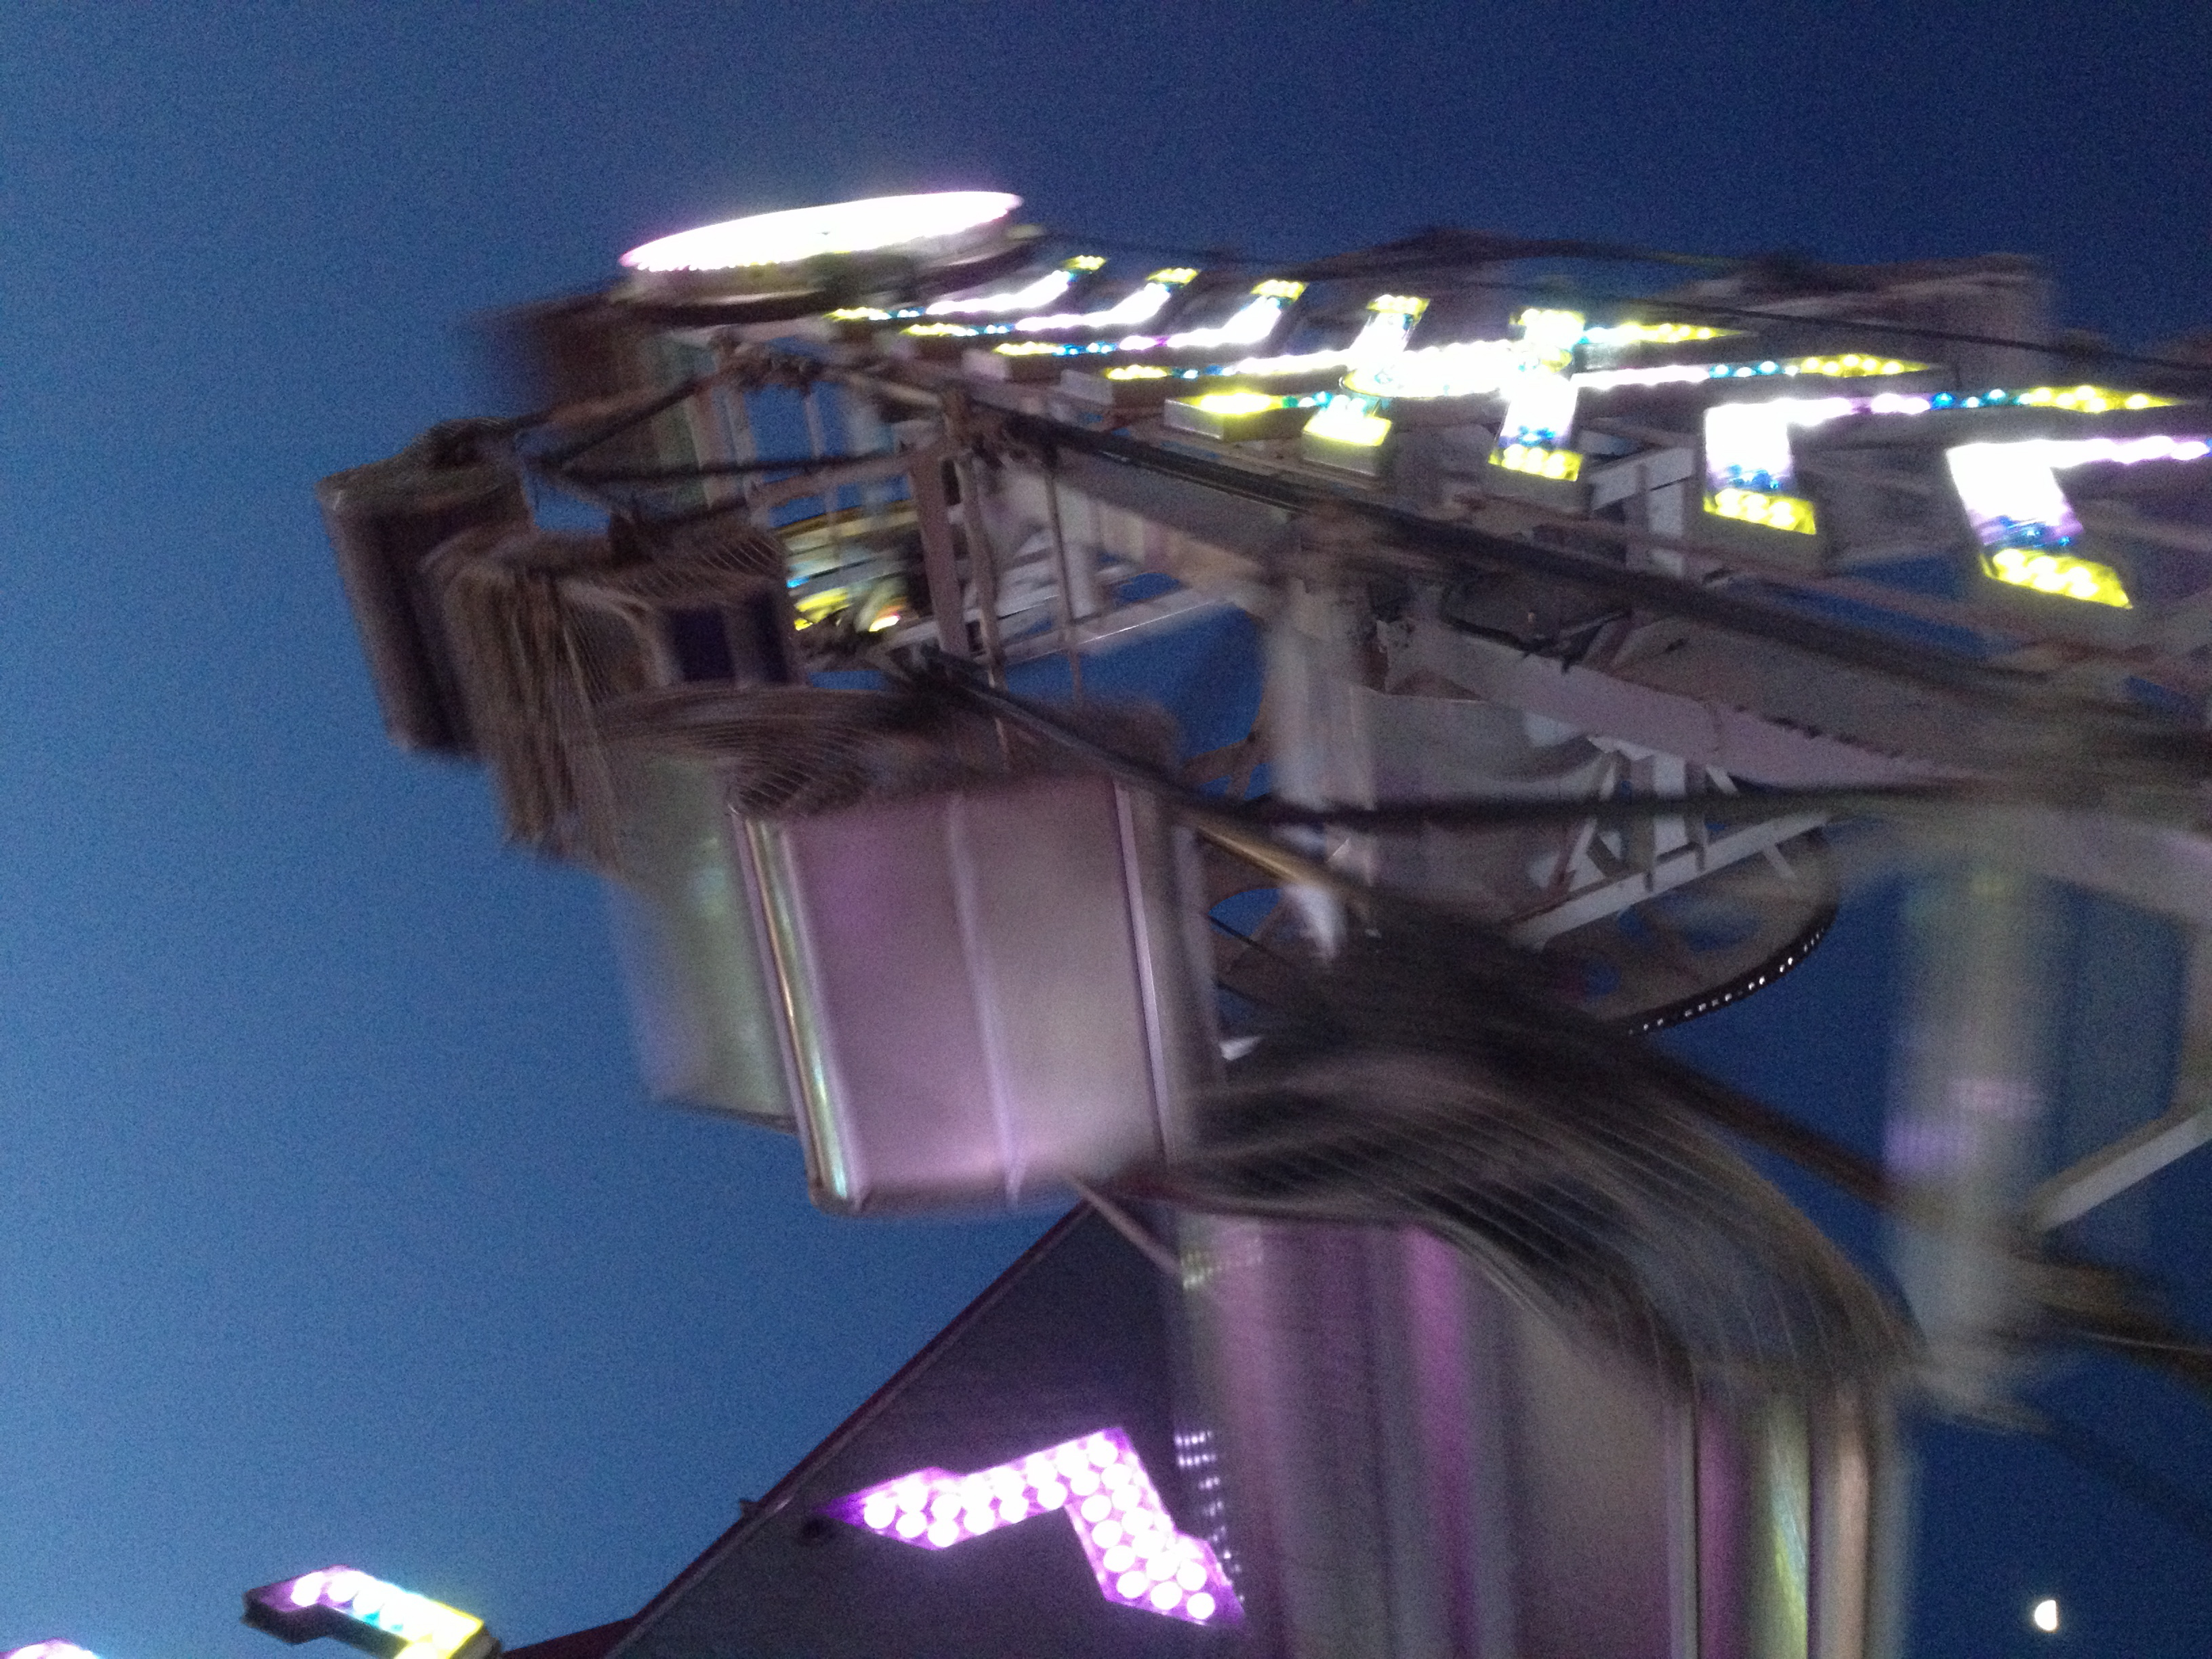 Crazy Ride at Electric Daisy Carnival